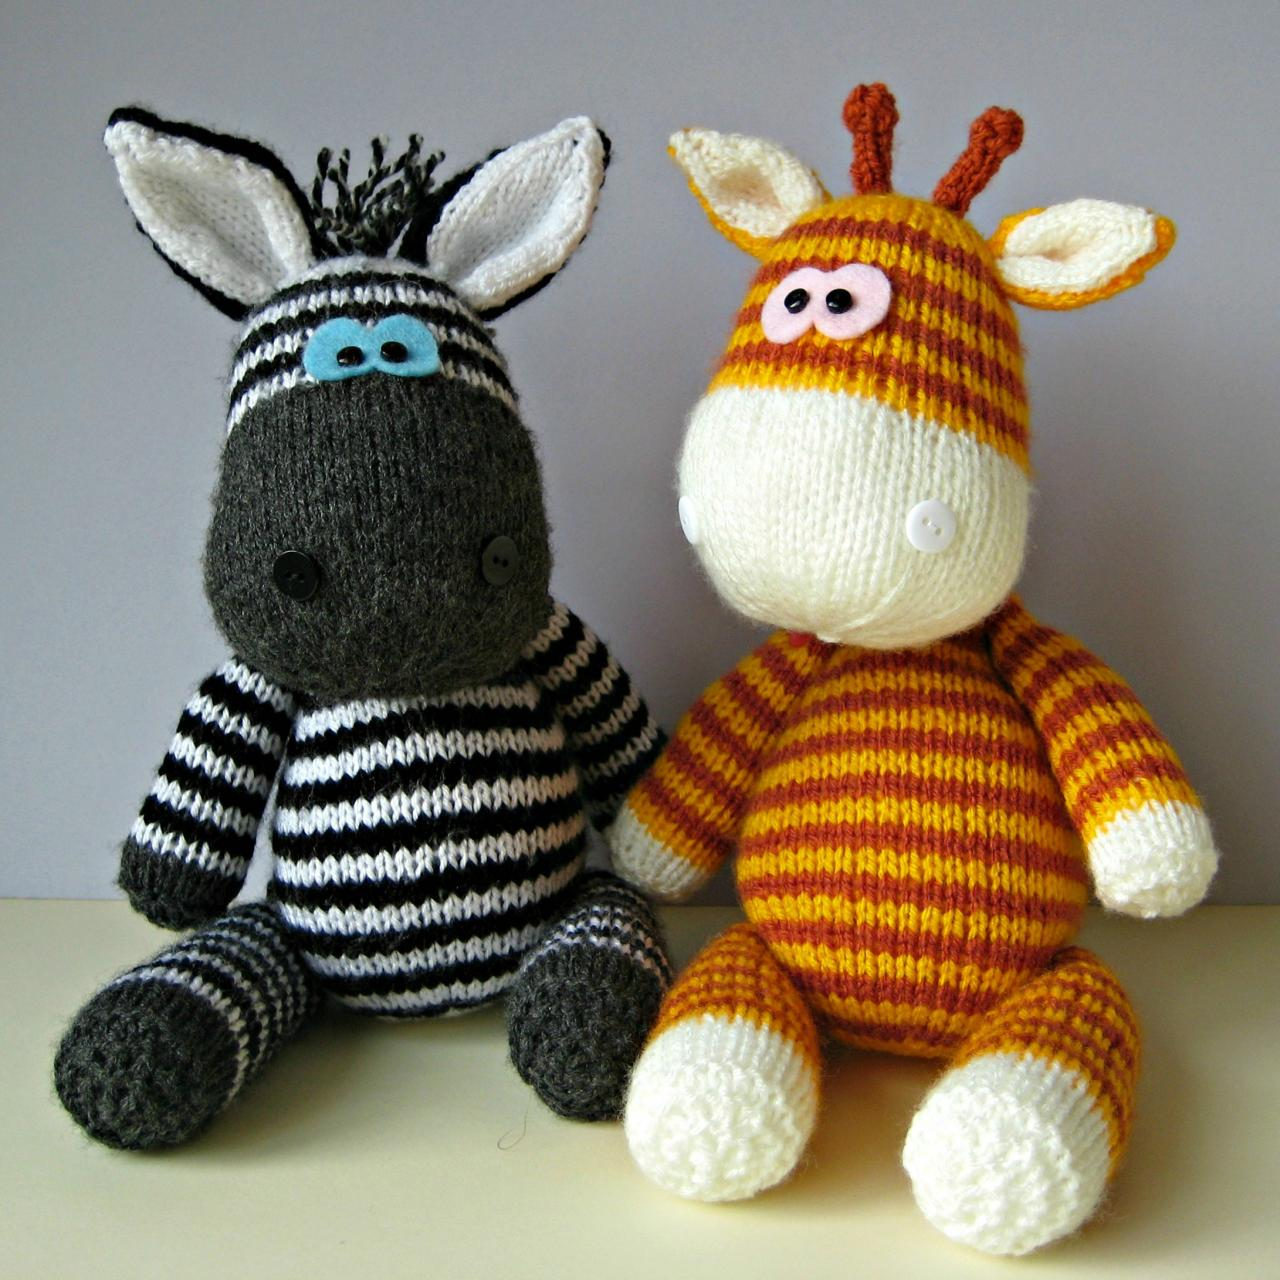 Gerry Giraffe And Ziggy Zebra Toy Knitting Patterns on Luulla